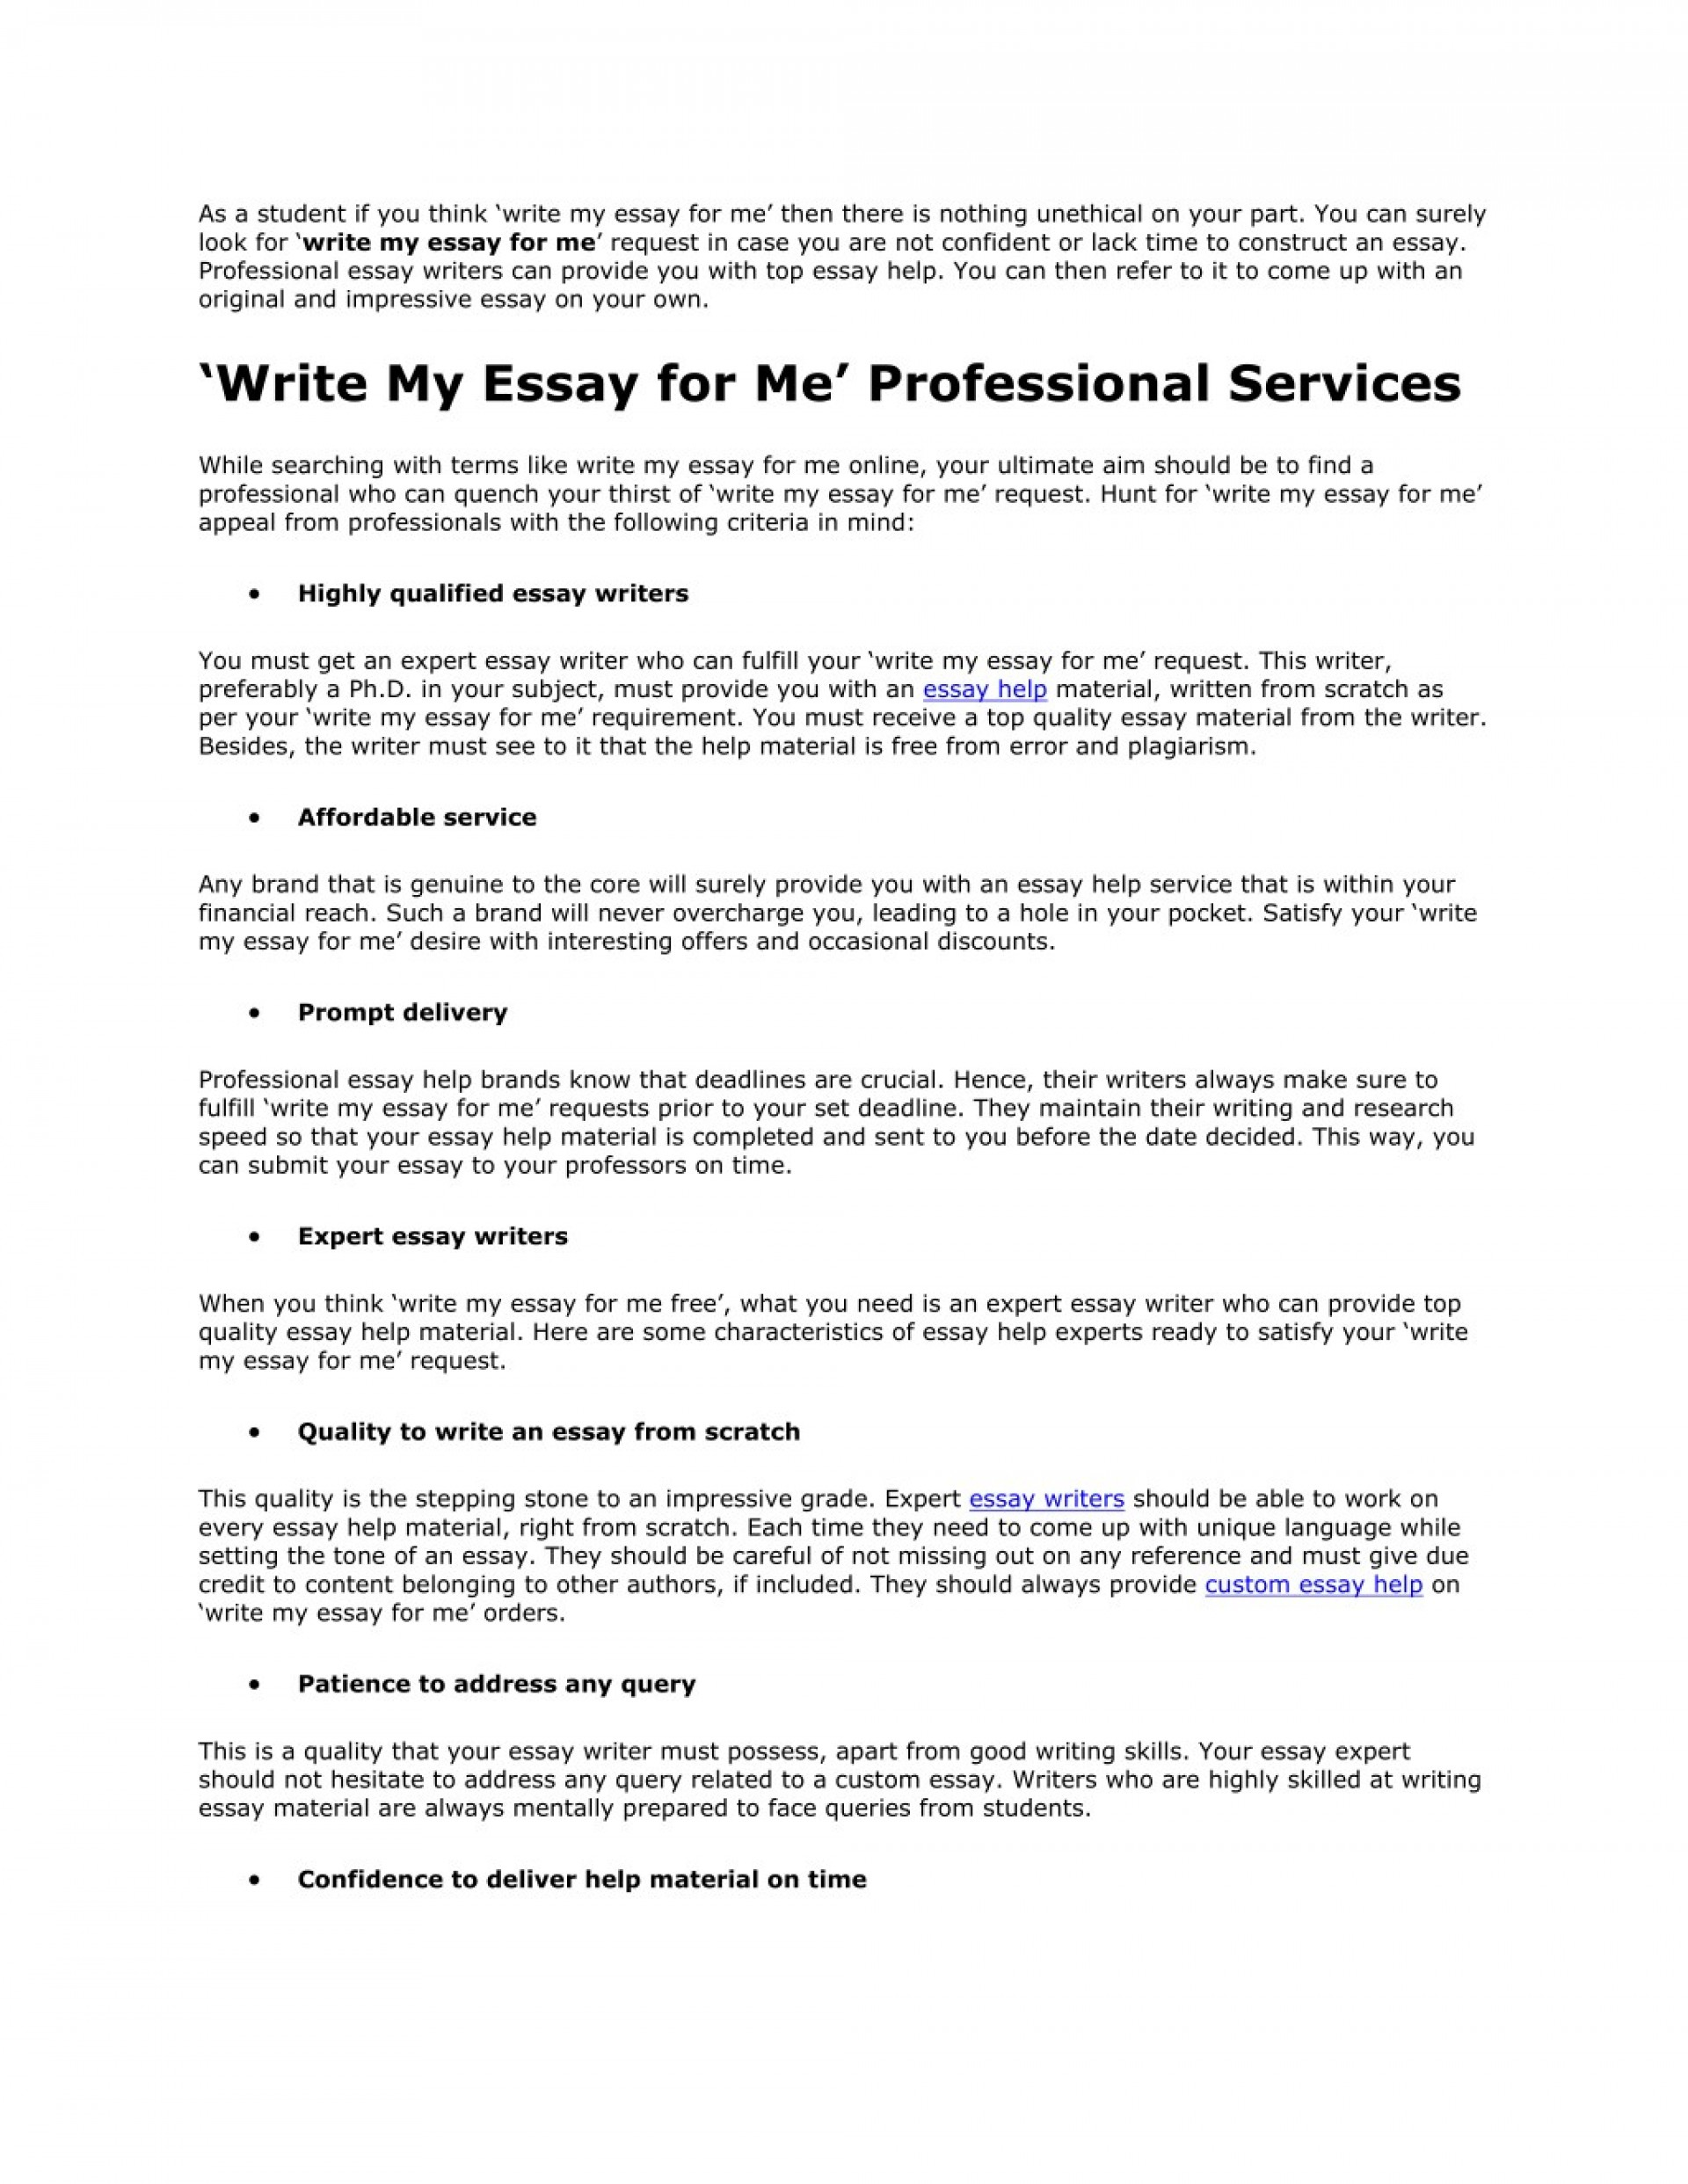 006 Essay Example Write For Me As Student If You Think My Amazing Custom Cheap Online Free 1920